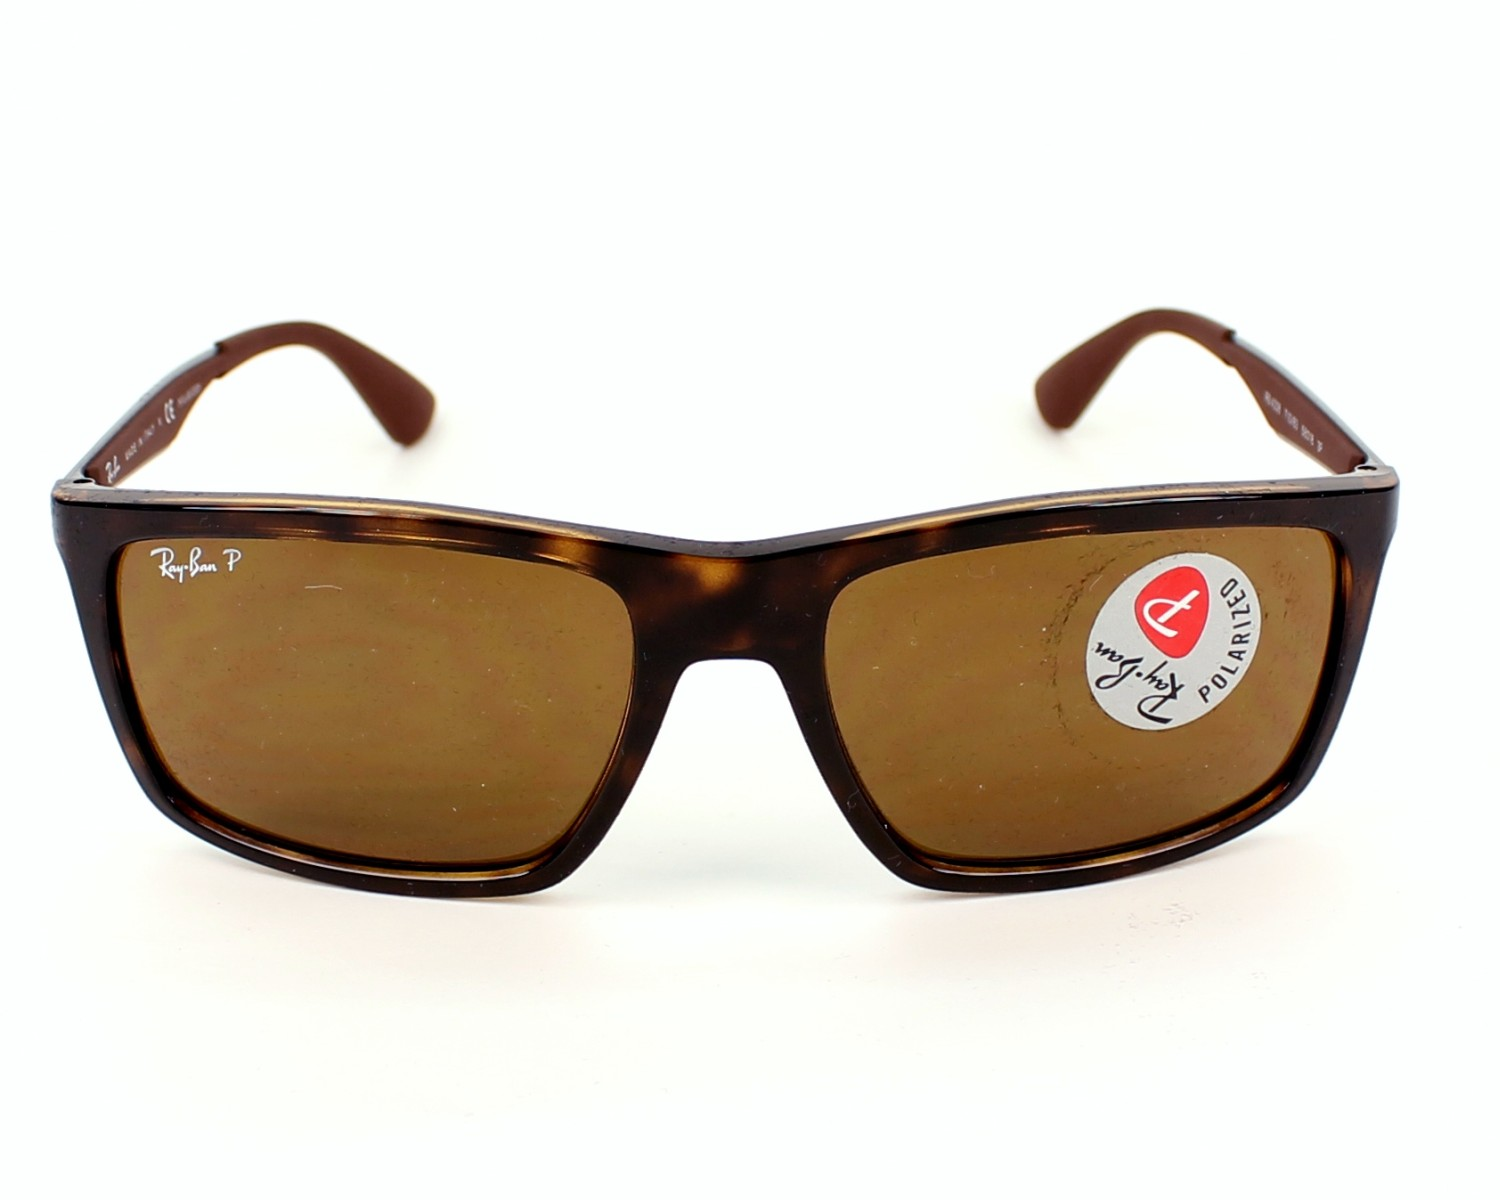 d9cda4cc5db Sunglasses Ray-Ban RB-4228 710 83 58-18 Havana Brown front